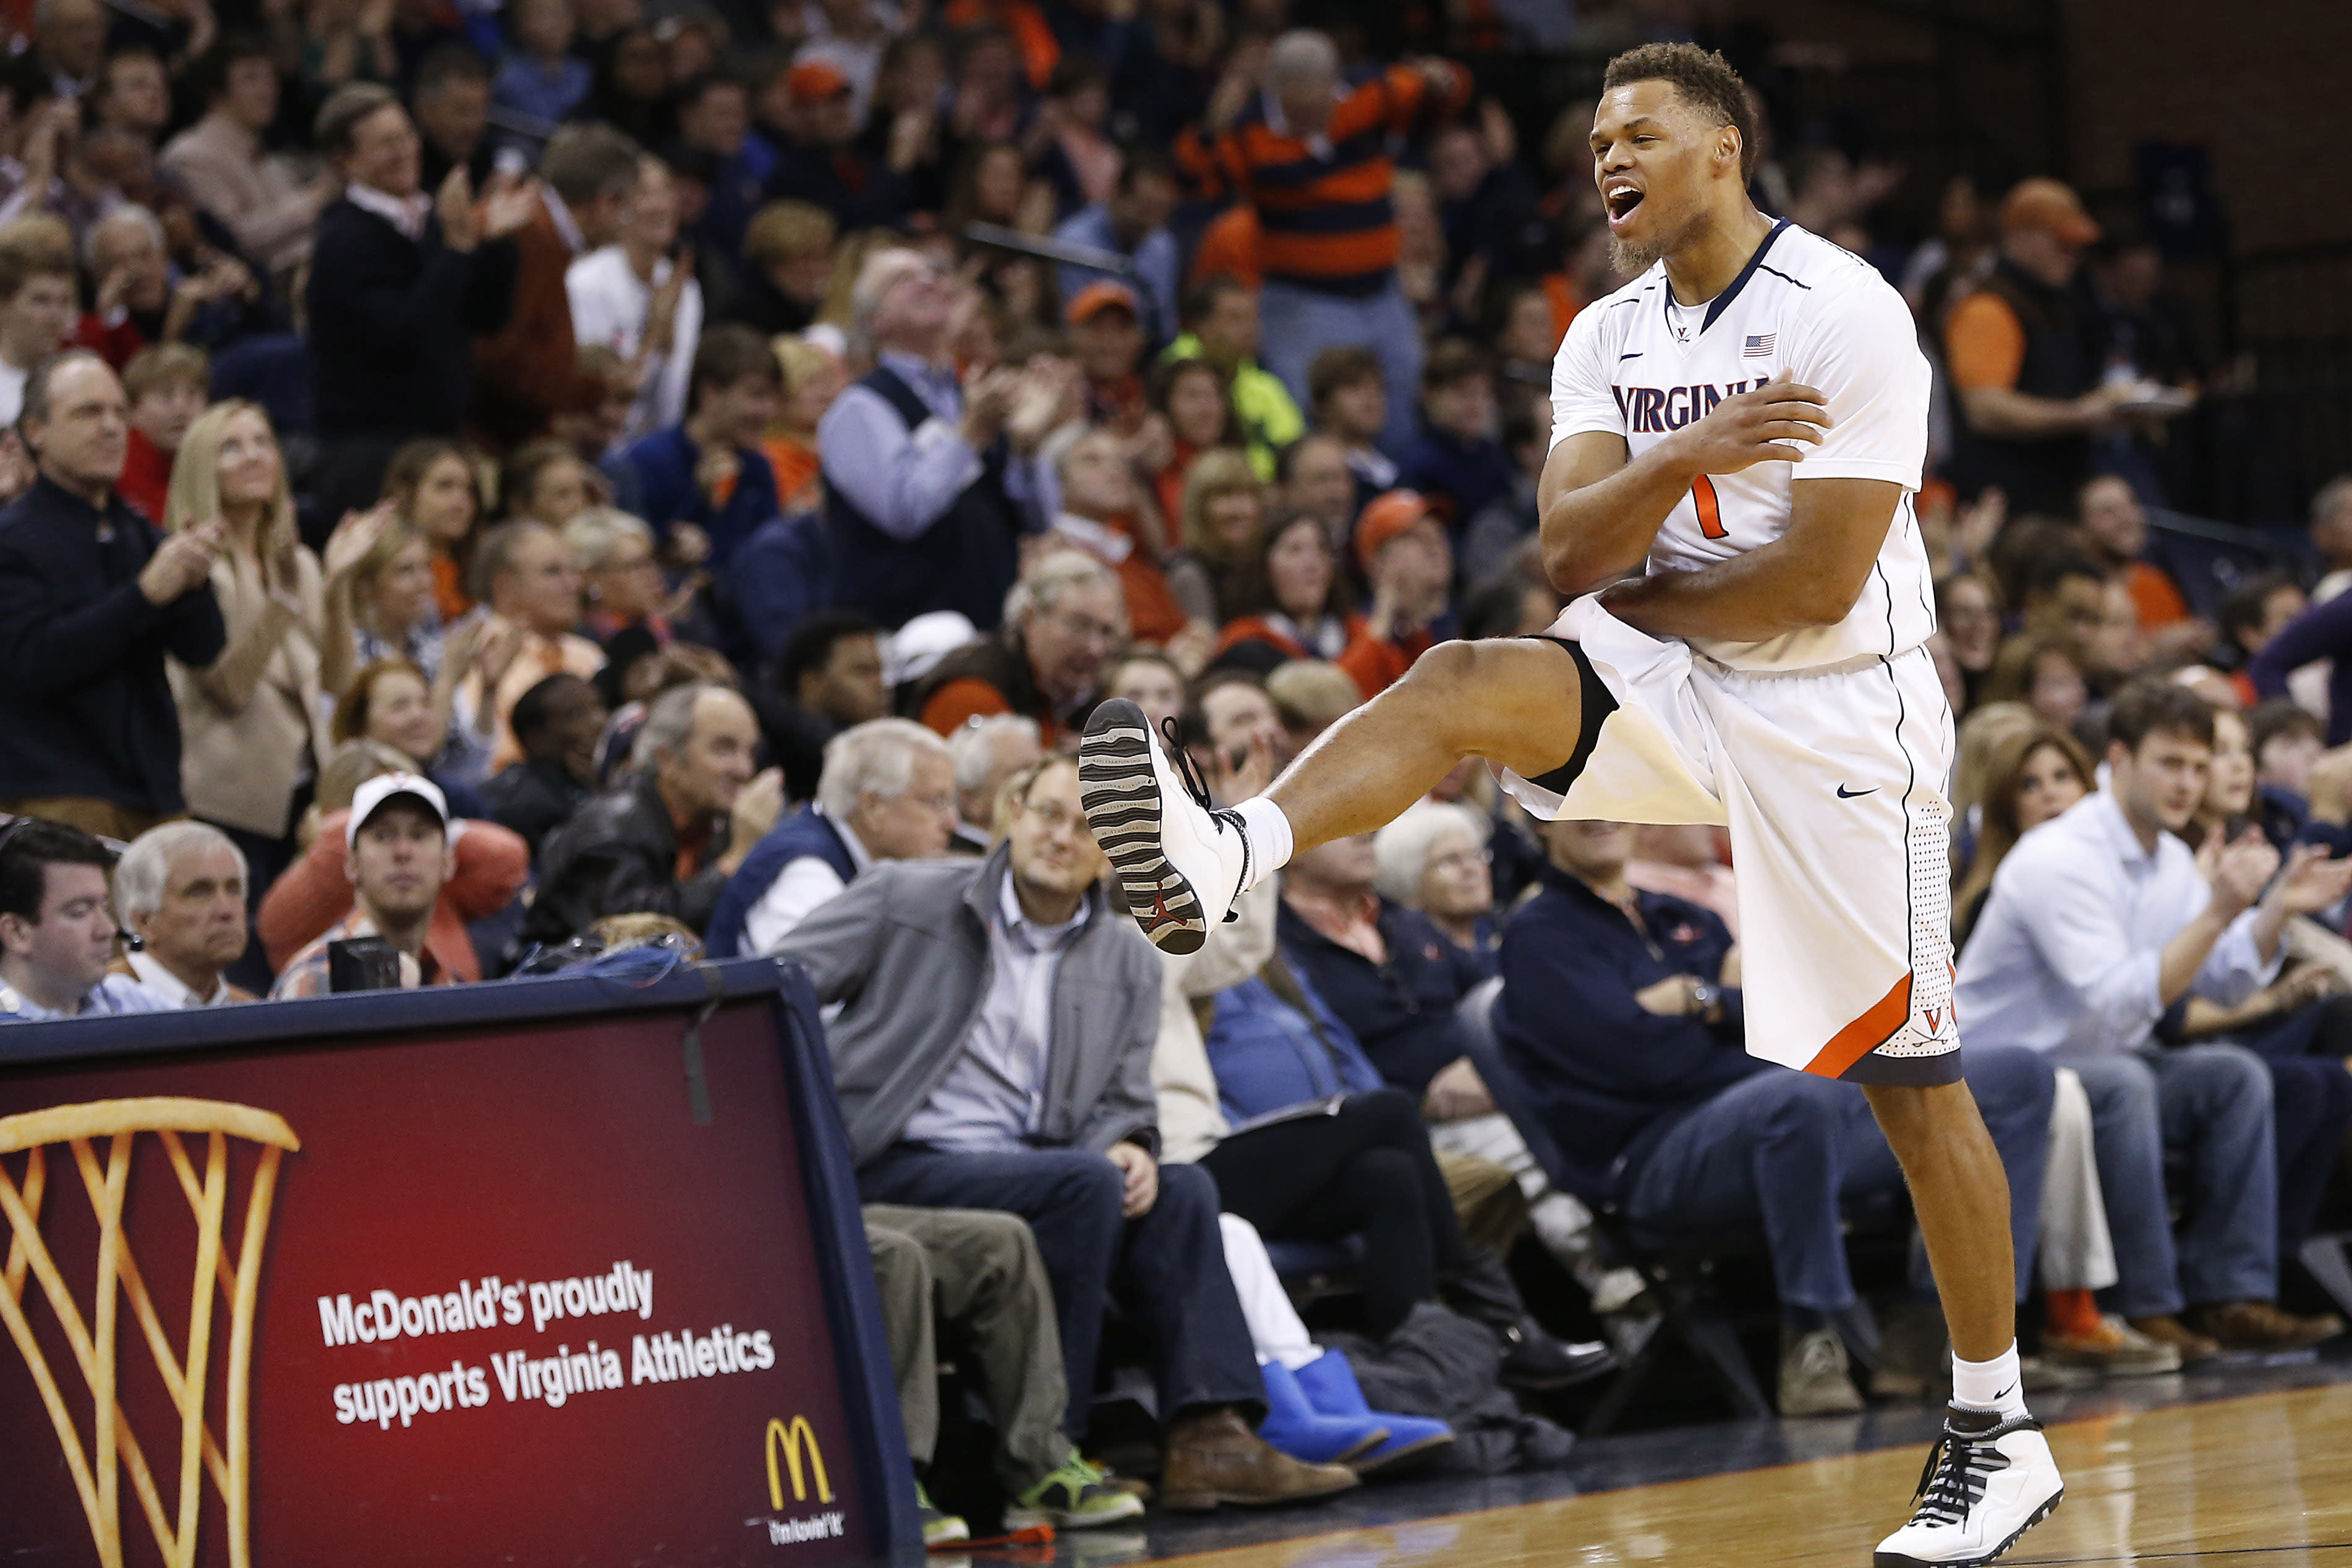 Virginia holds Harvard to a record-tying one first-half field goal